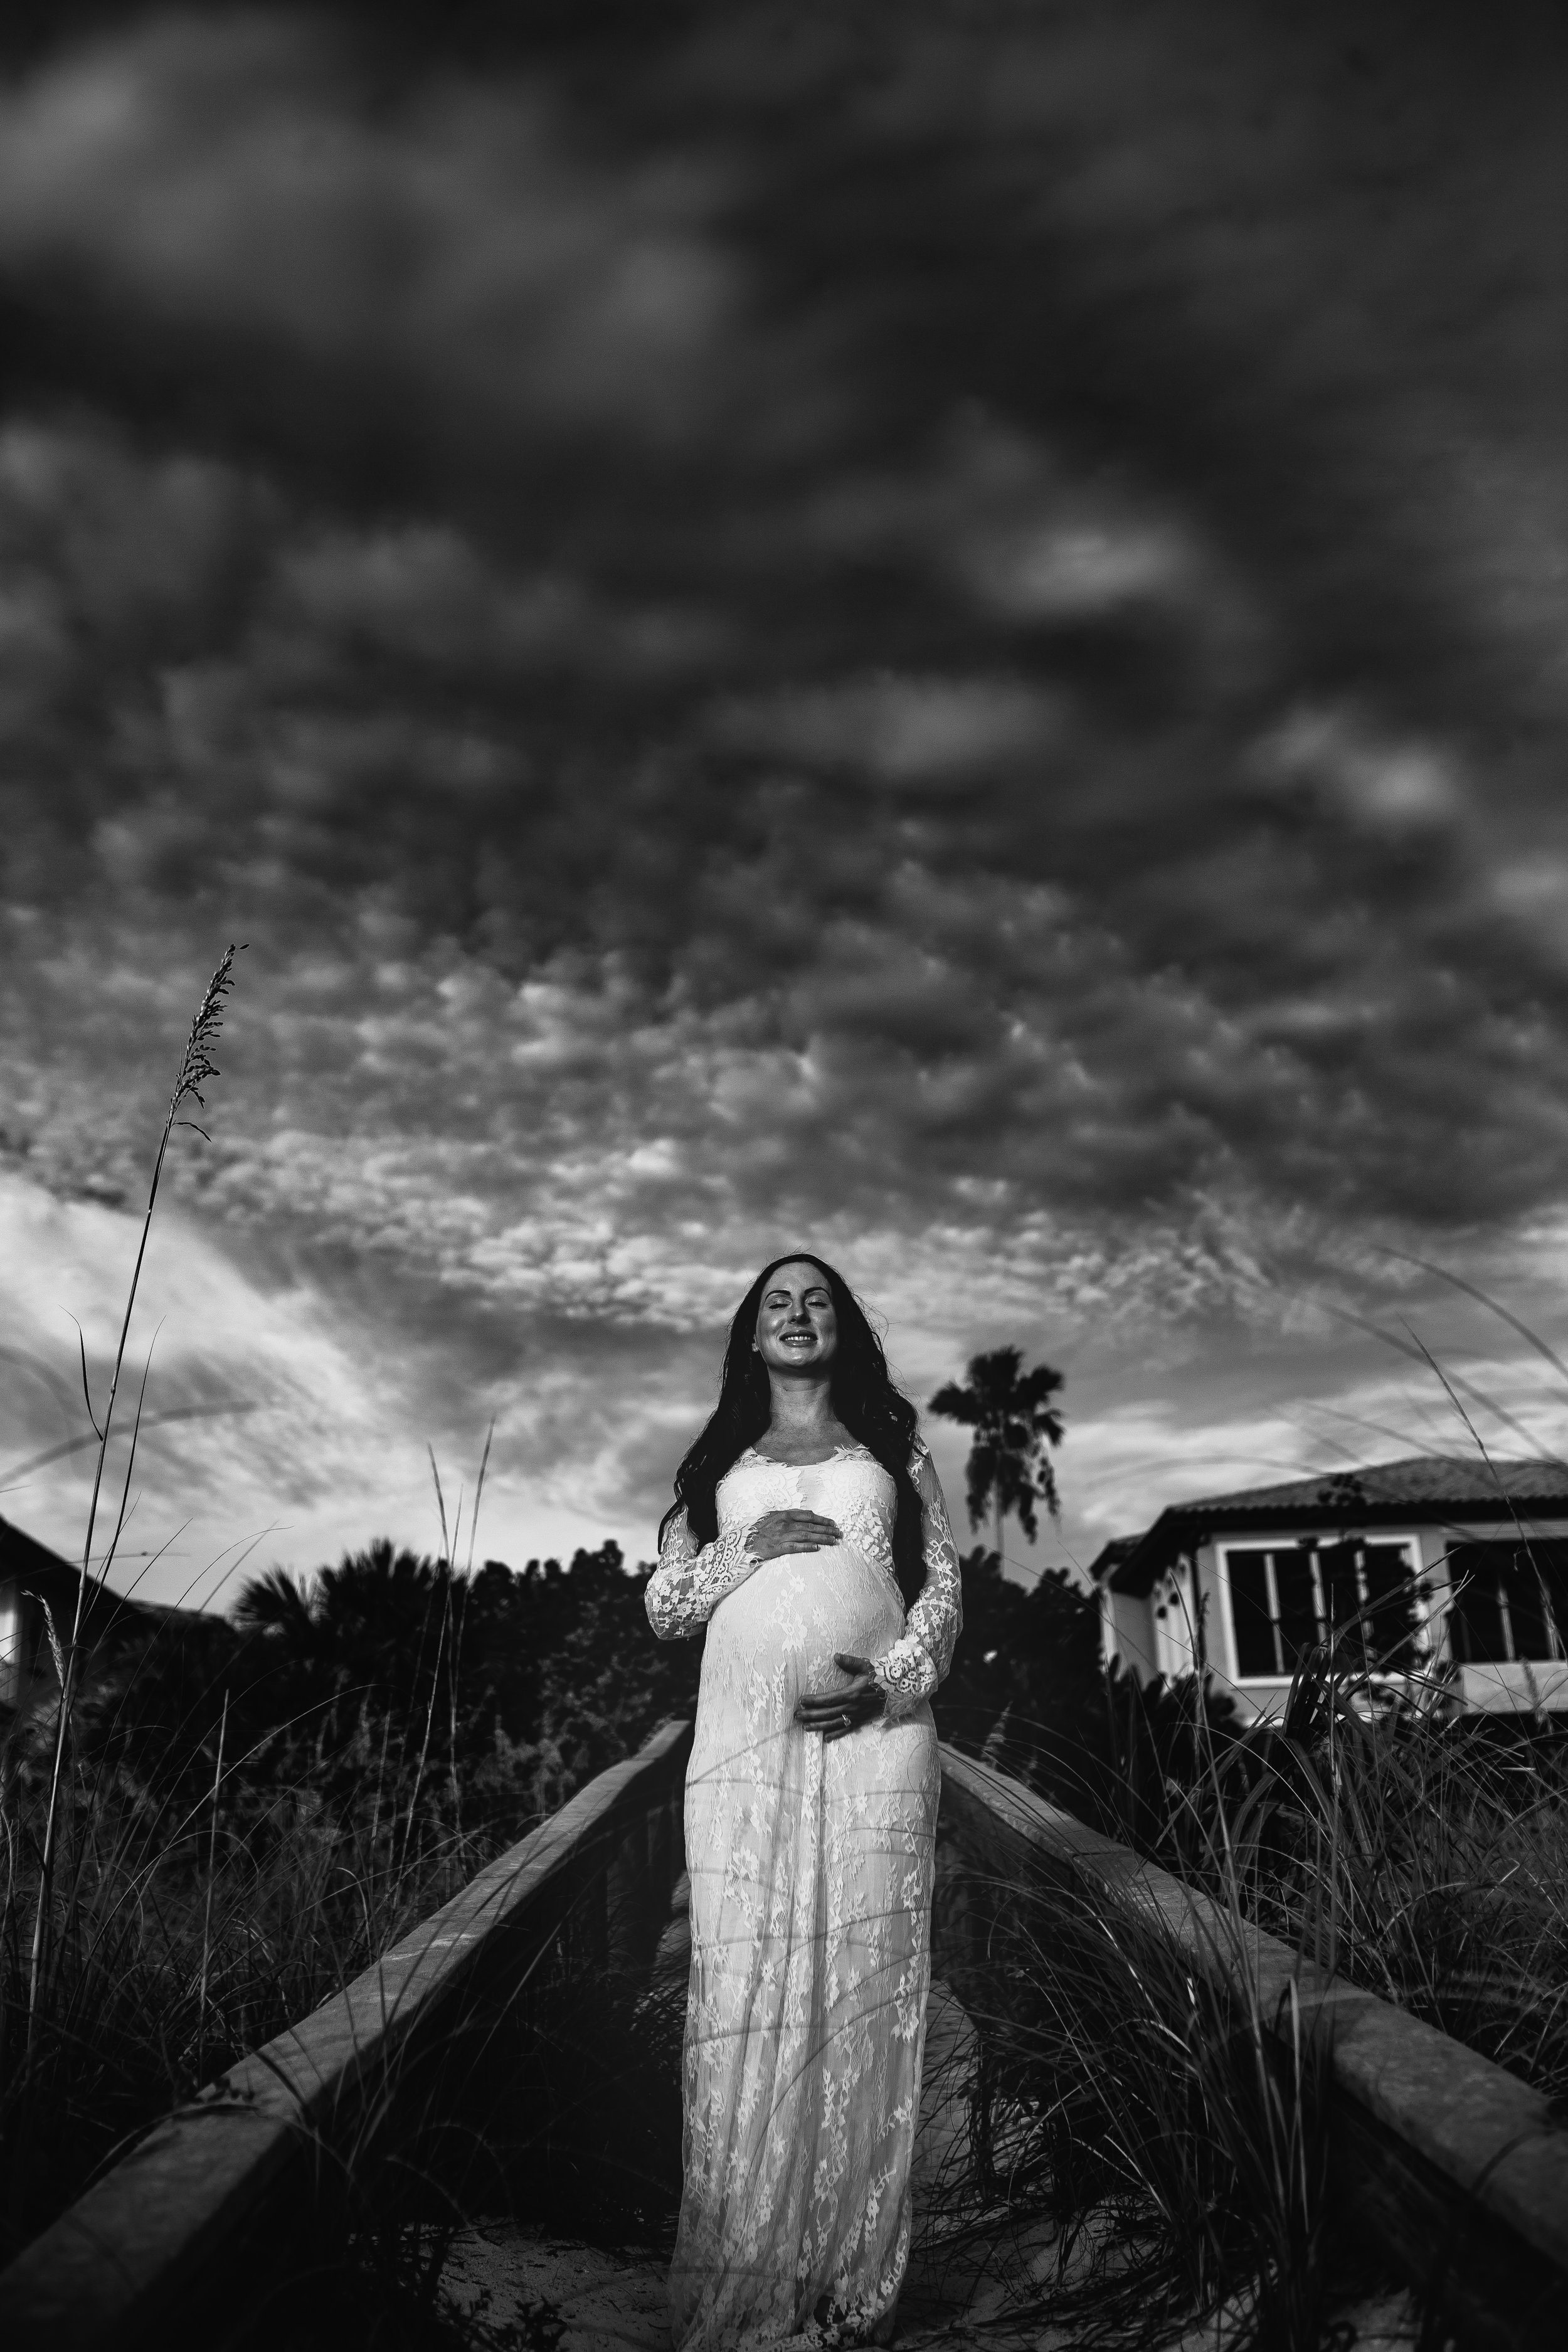 bohemian maternity photographer, tampa bay, st Pete, clearwater beach